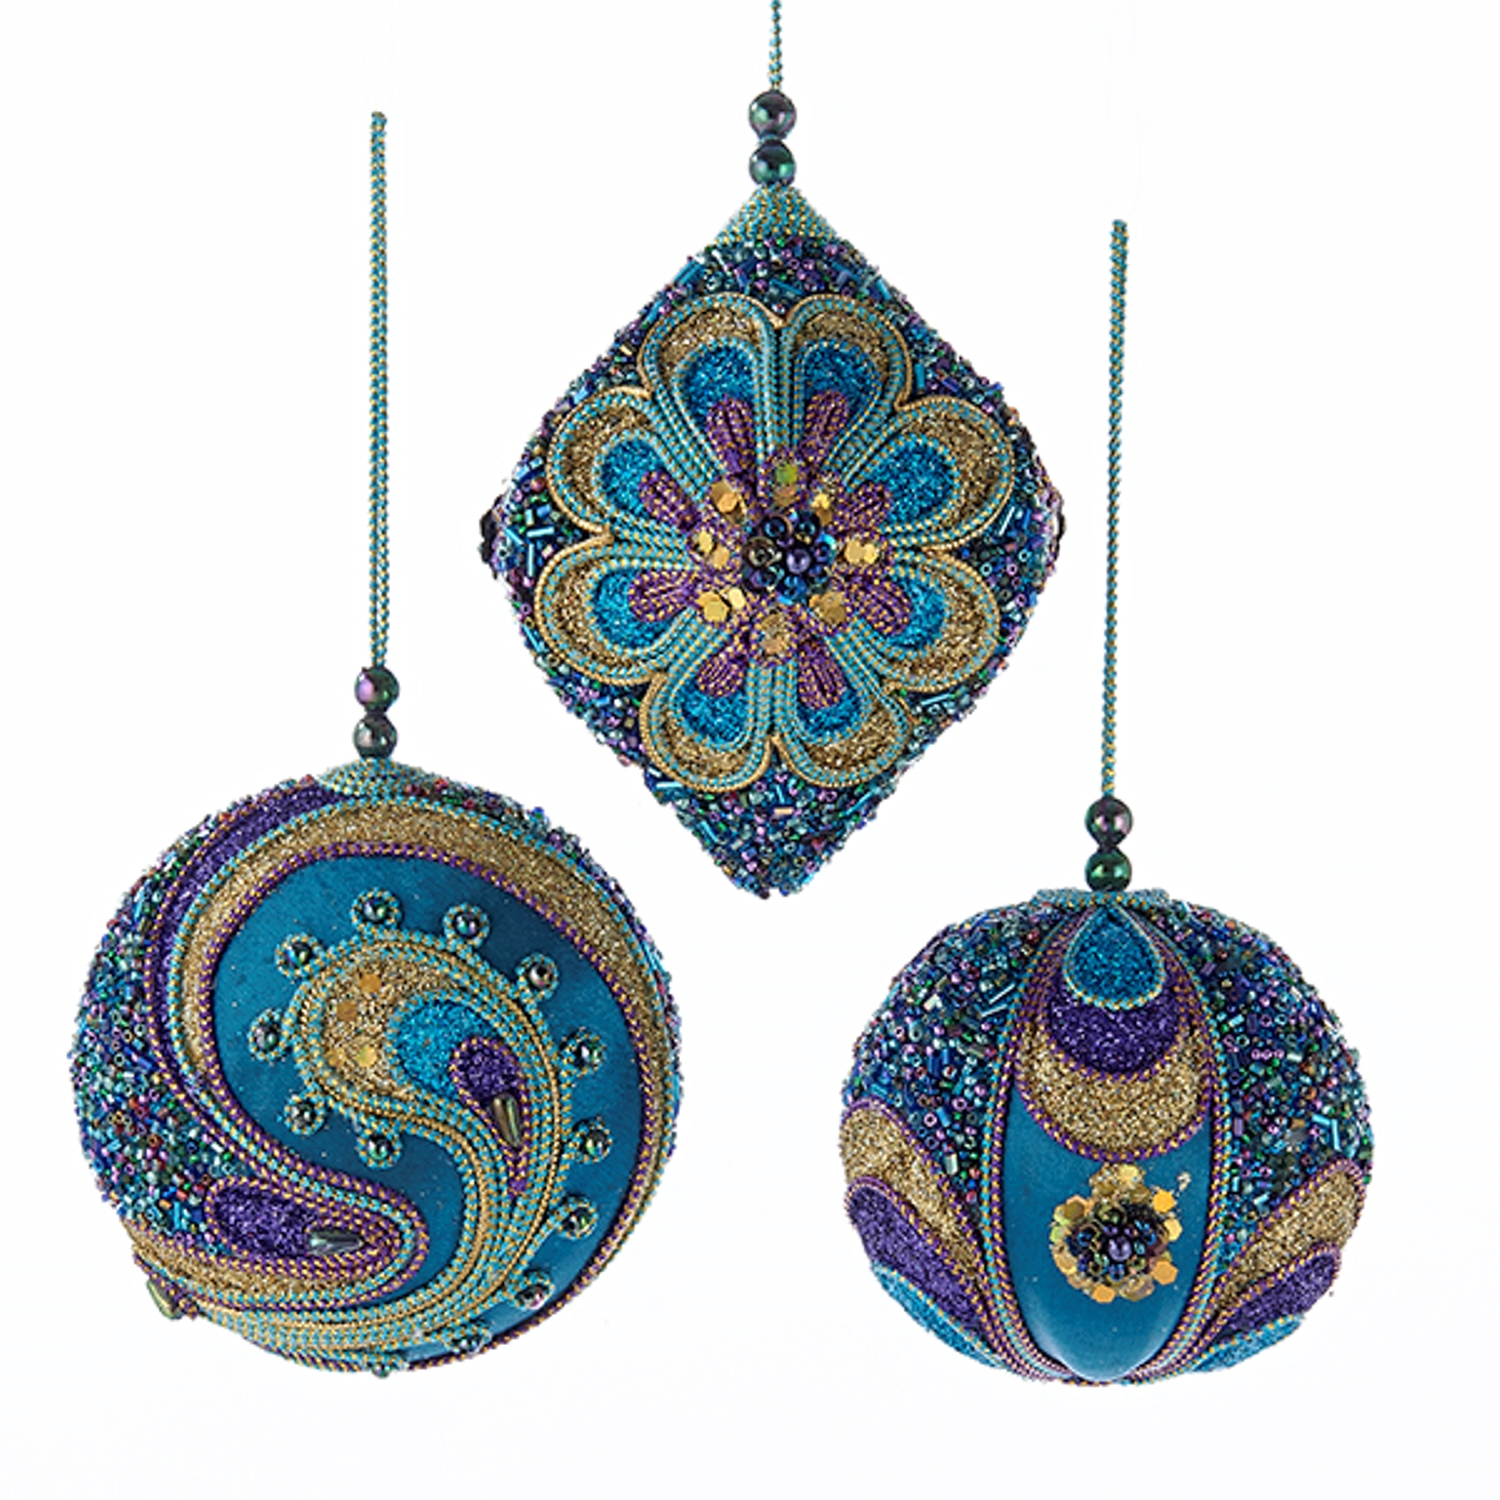 Teal Purple and Gold Beaded Christmas Holiday Ornaments ...